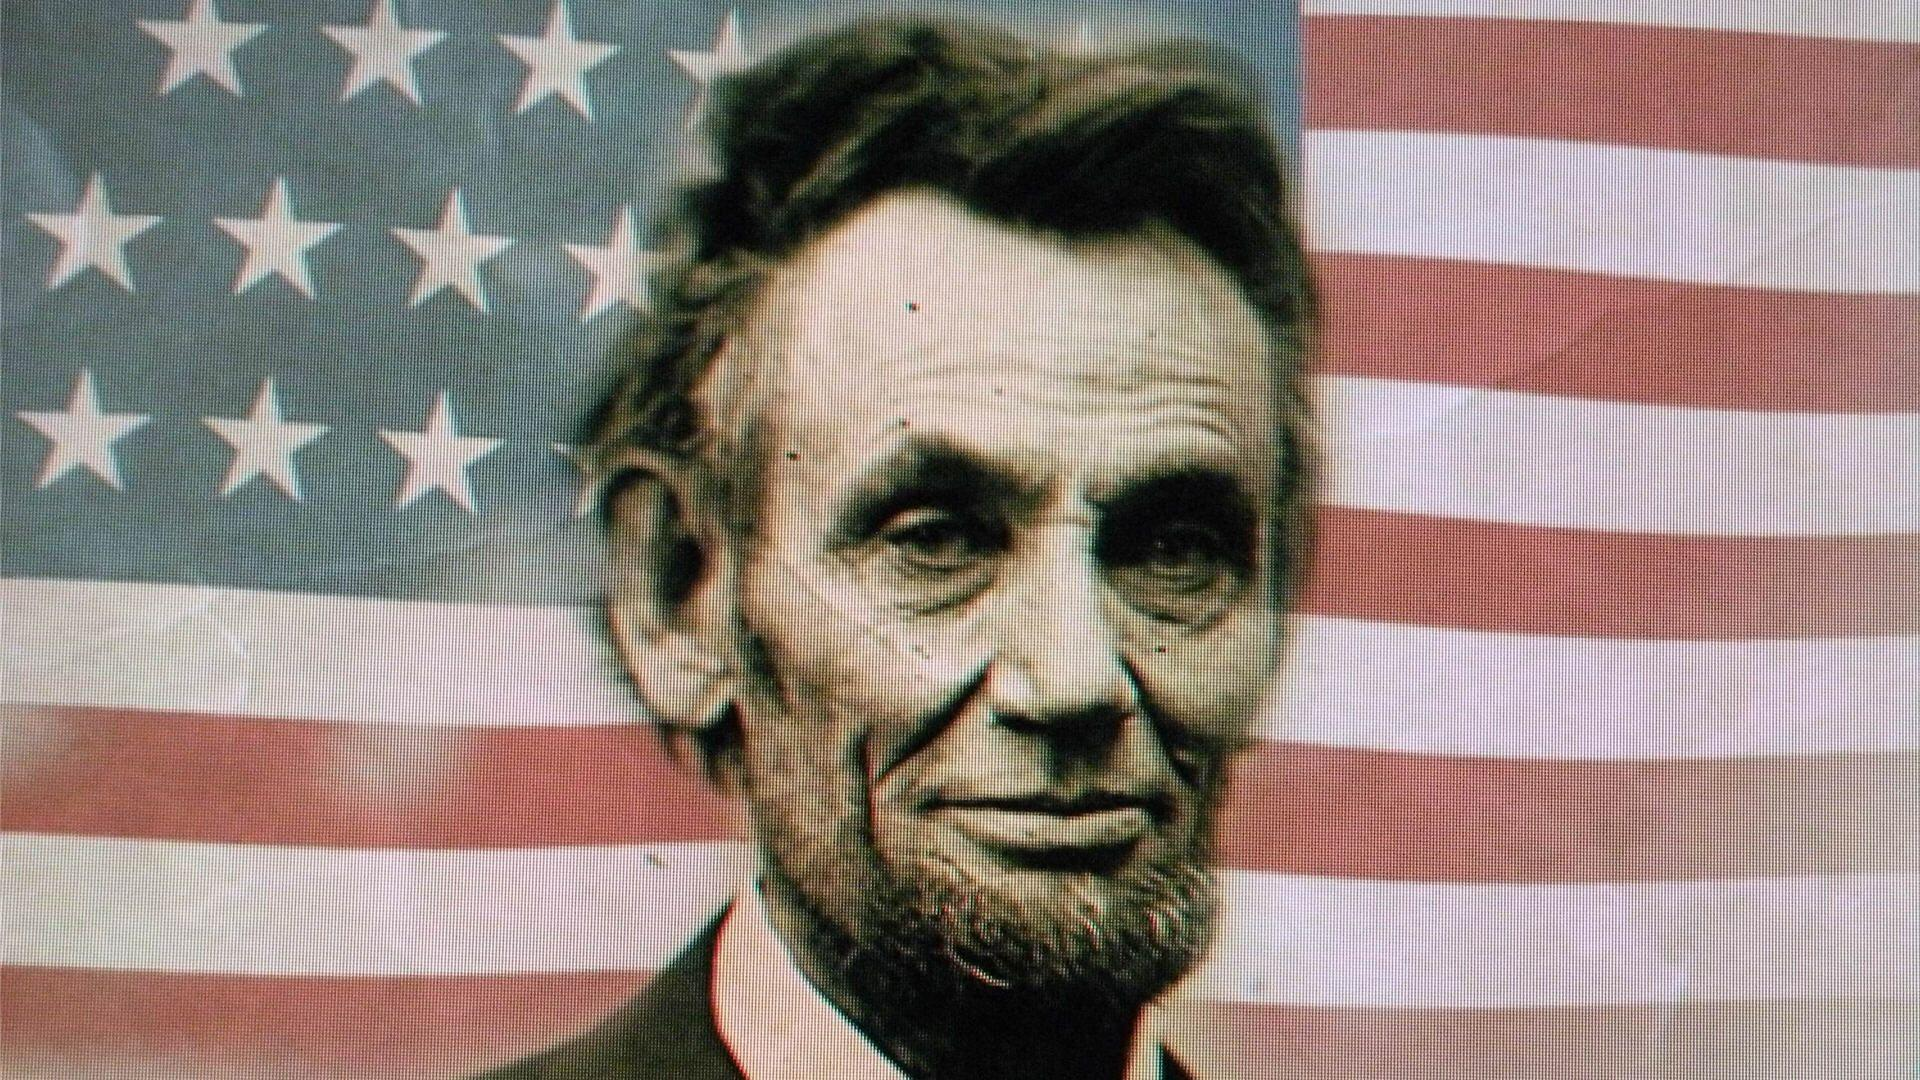 Abraham Lincoln Photos #6993842